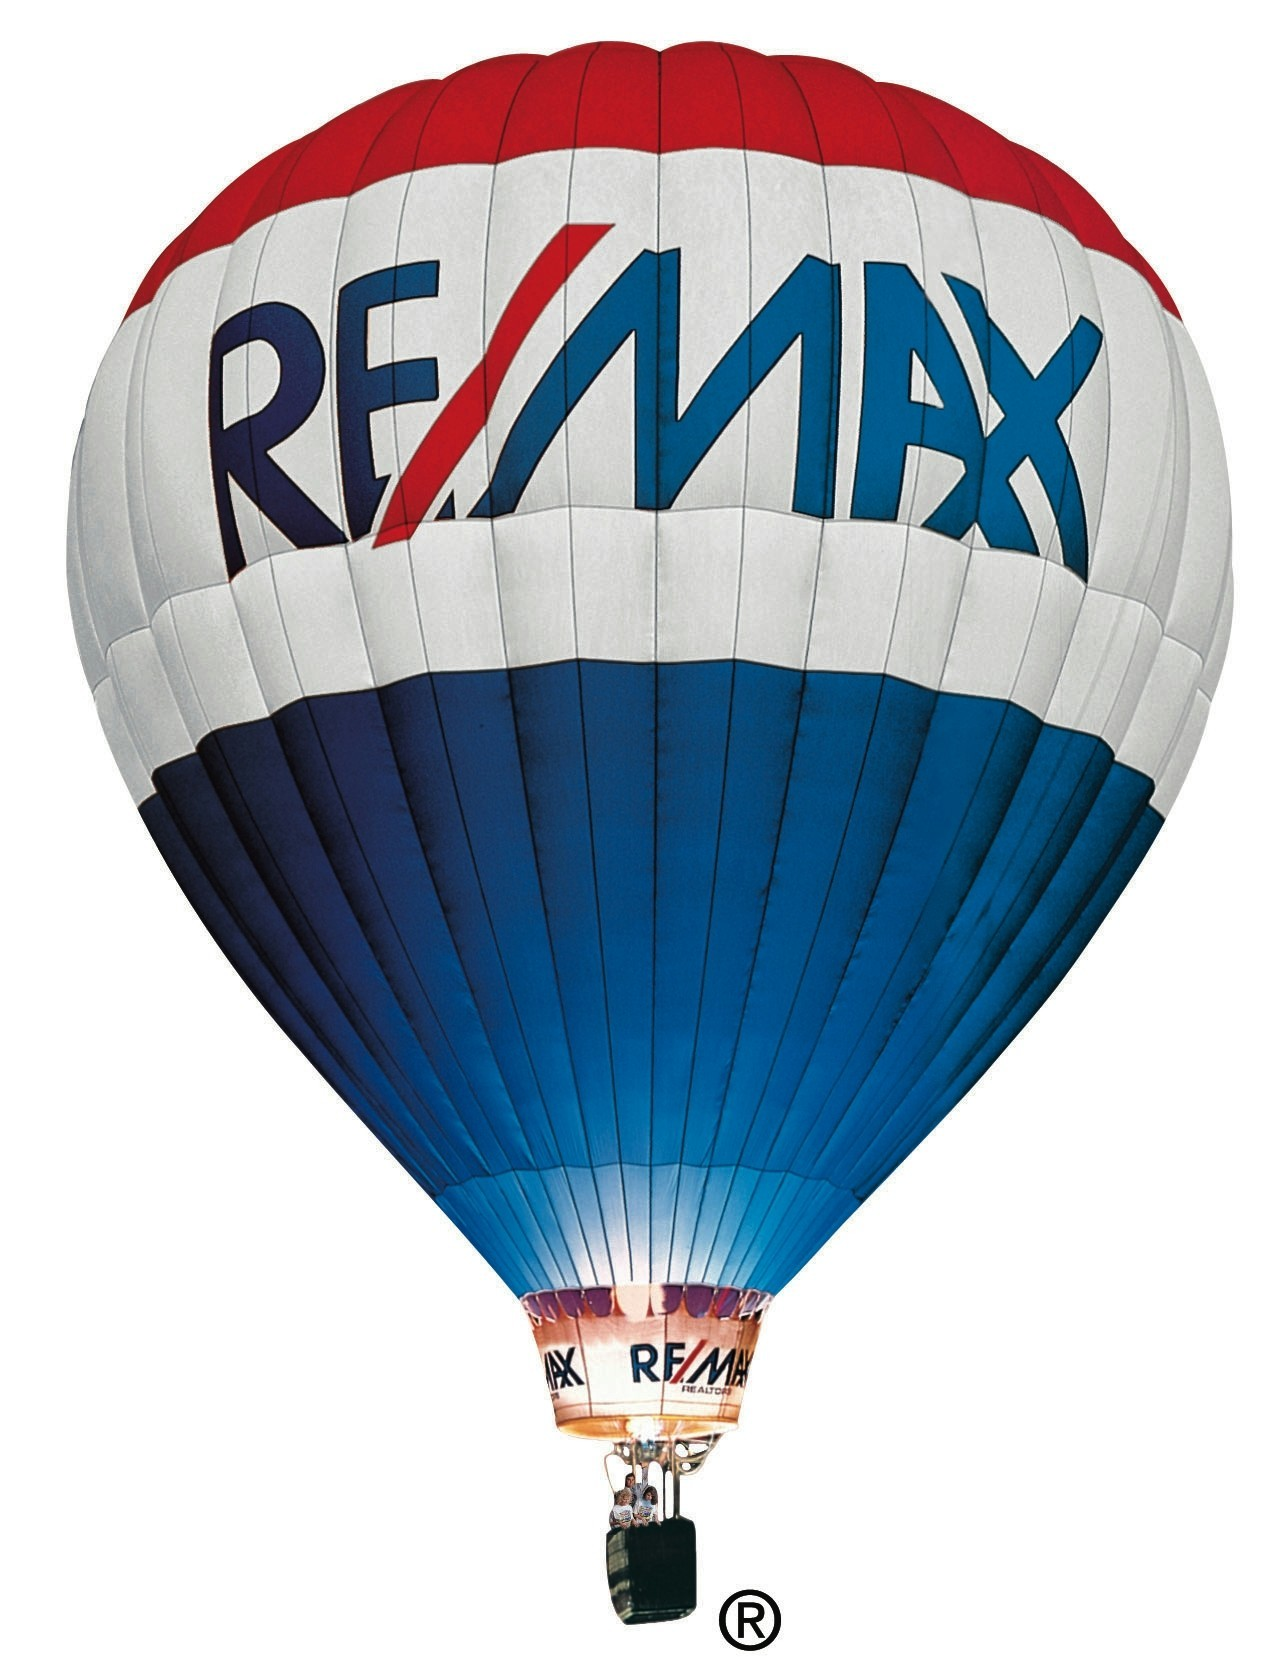 REMAX Balloon with detail.jpg